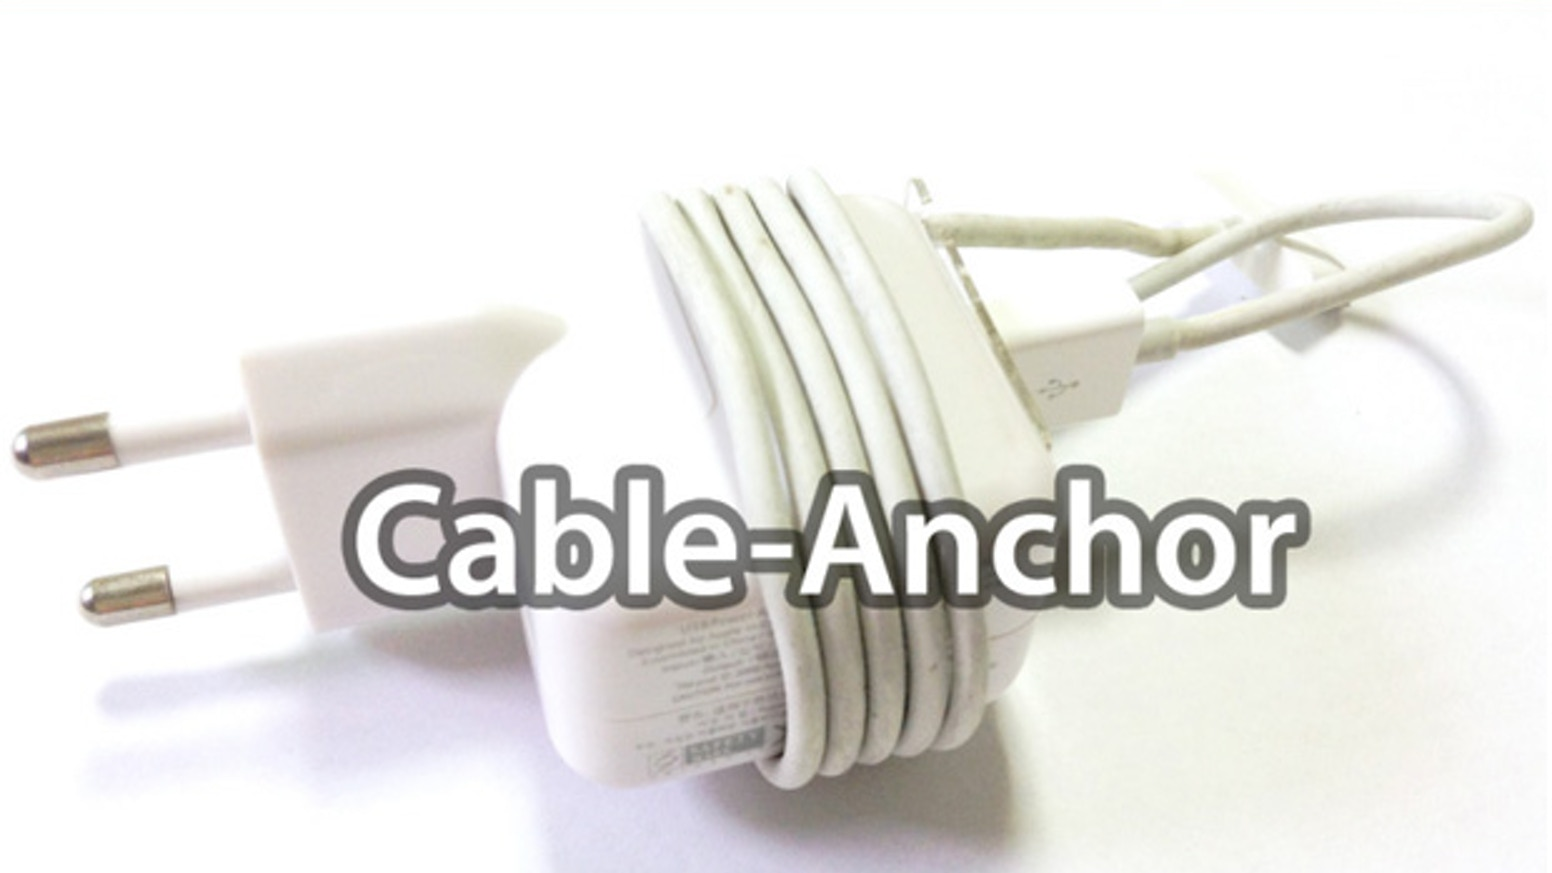 Cable-Anchor is THE SIMPLEST and FASTEST solution in the WORLD to keep your  iphone